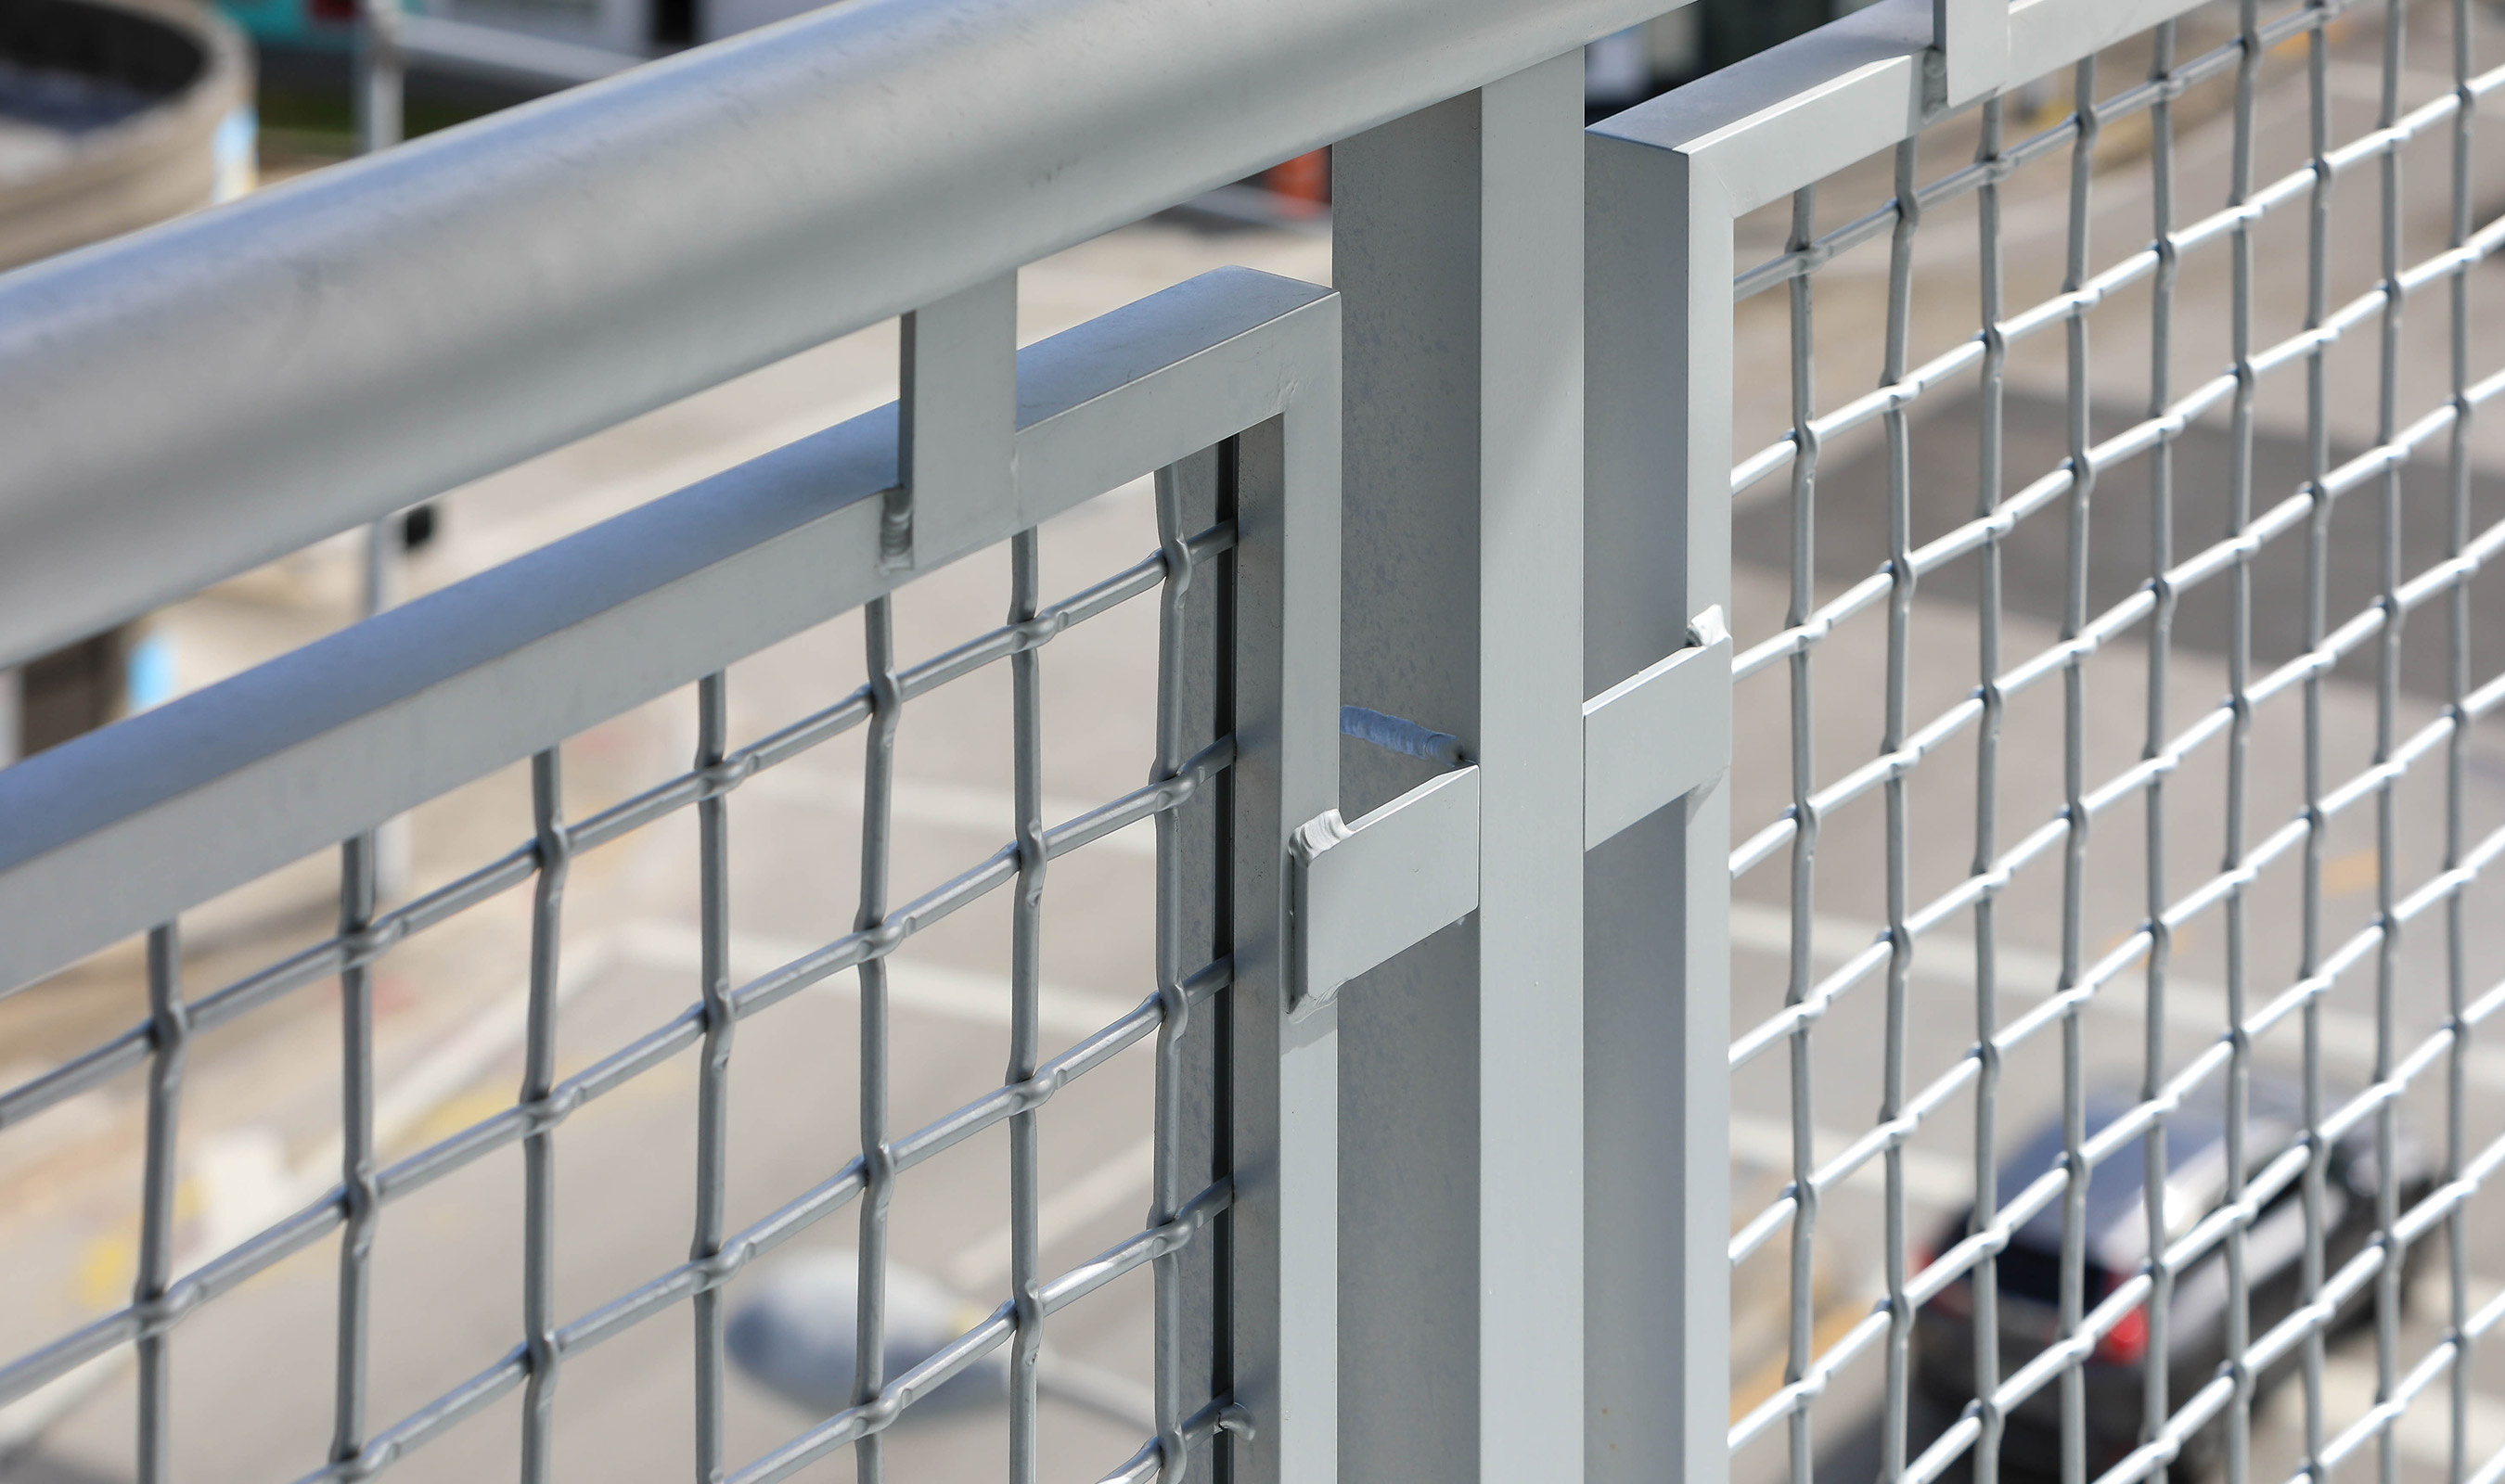 Banker Wire's L-64 woven in aluminum and powder coated is a great combination for exterior balcony railing when corrosion resistance is desired.